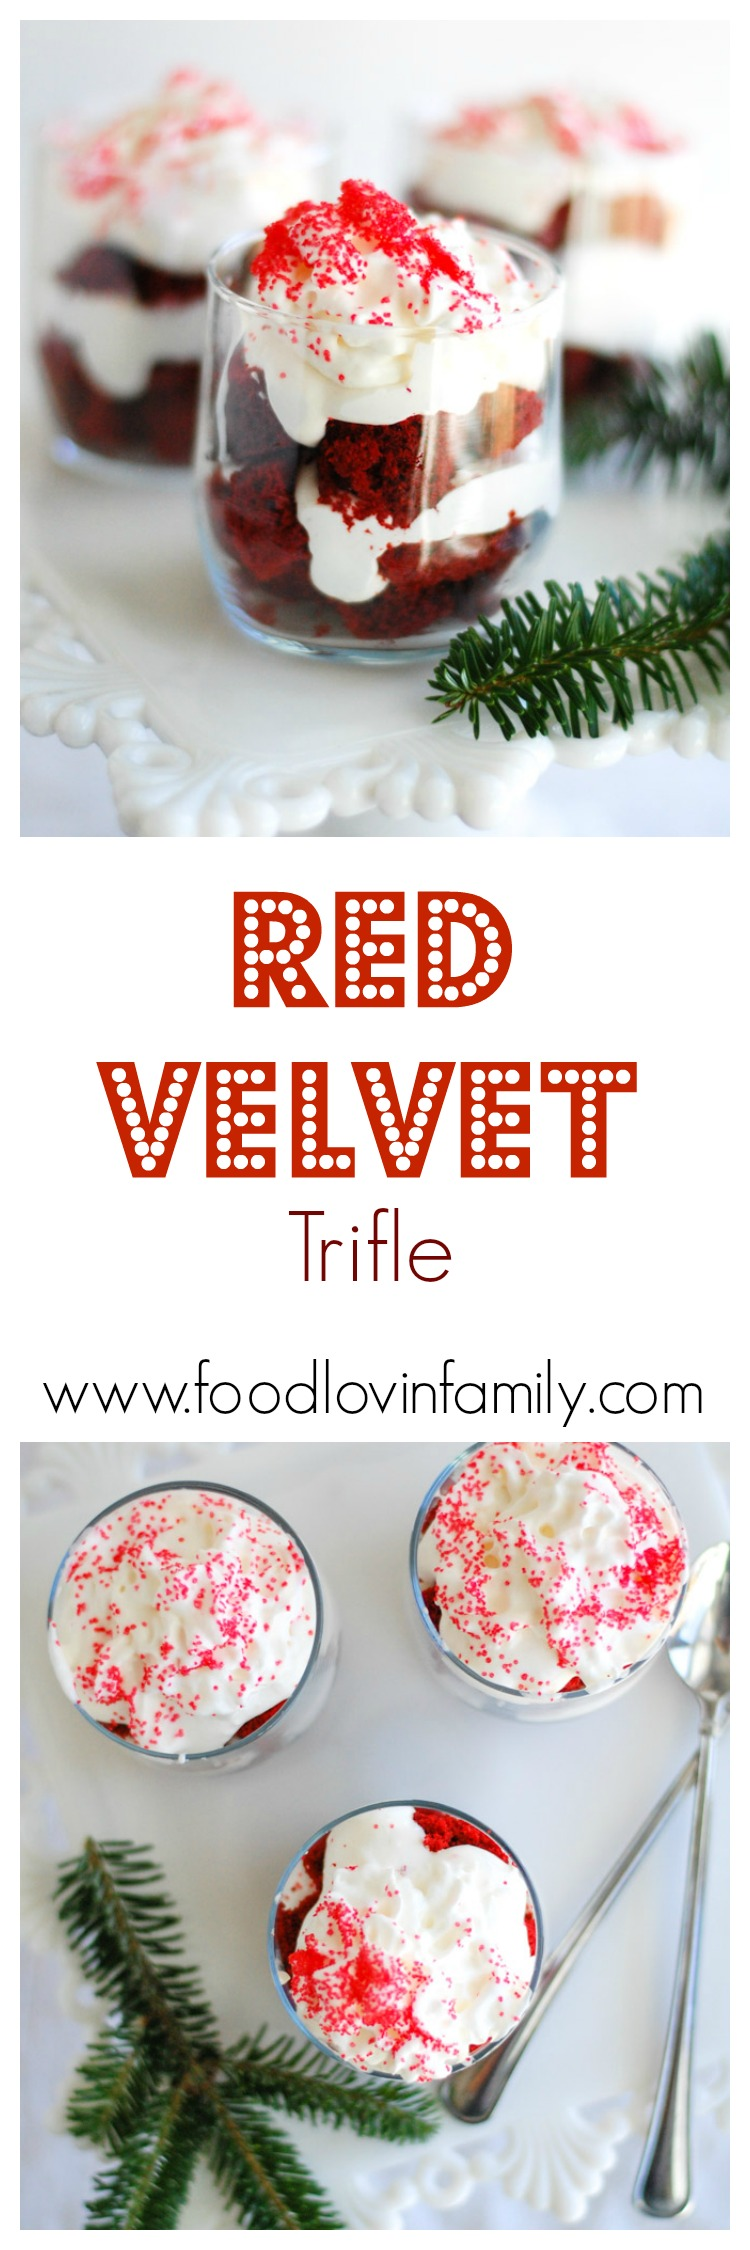 Red Velvet Trifle is made easy by using a cake mix, frozen whipped topping and cream cheese. A festive and delicious treat perfect for the holidays.